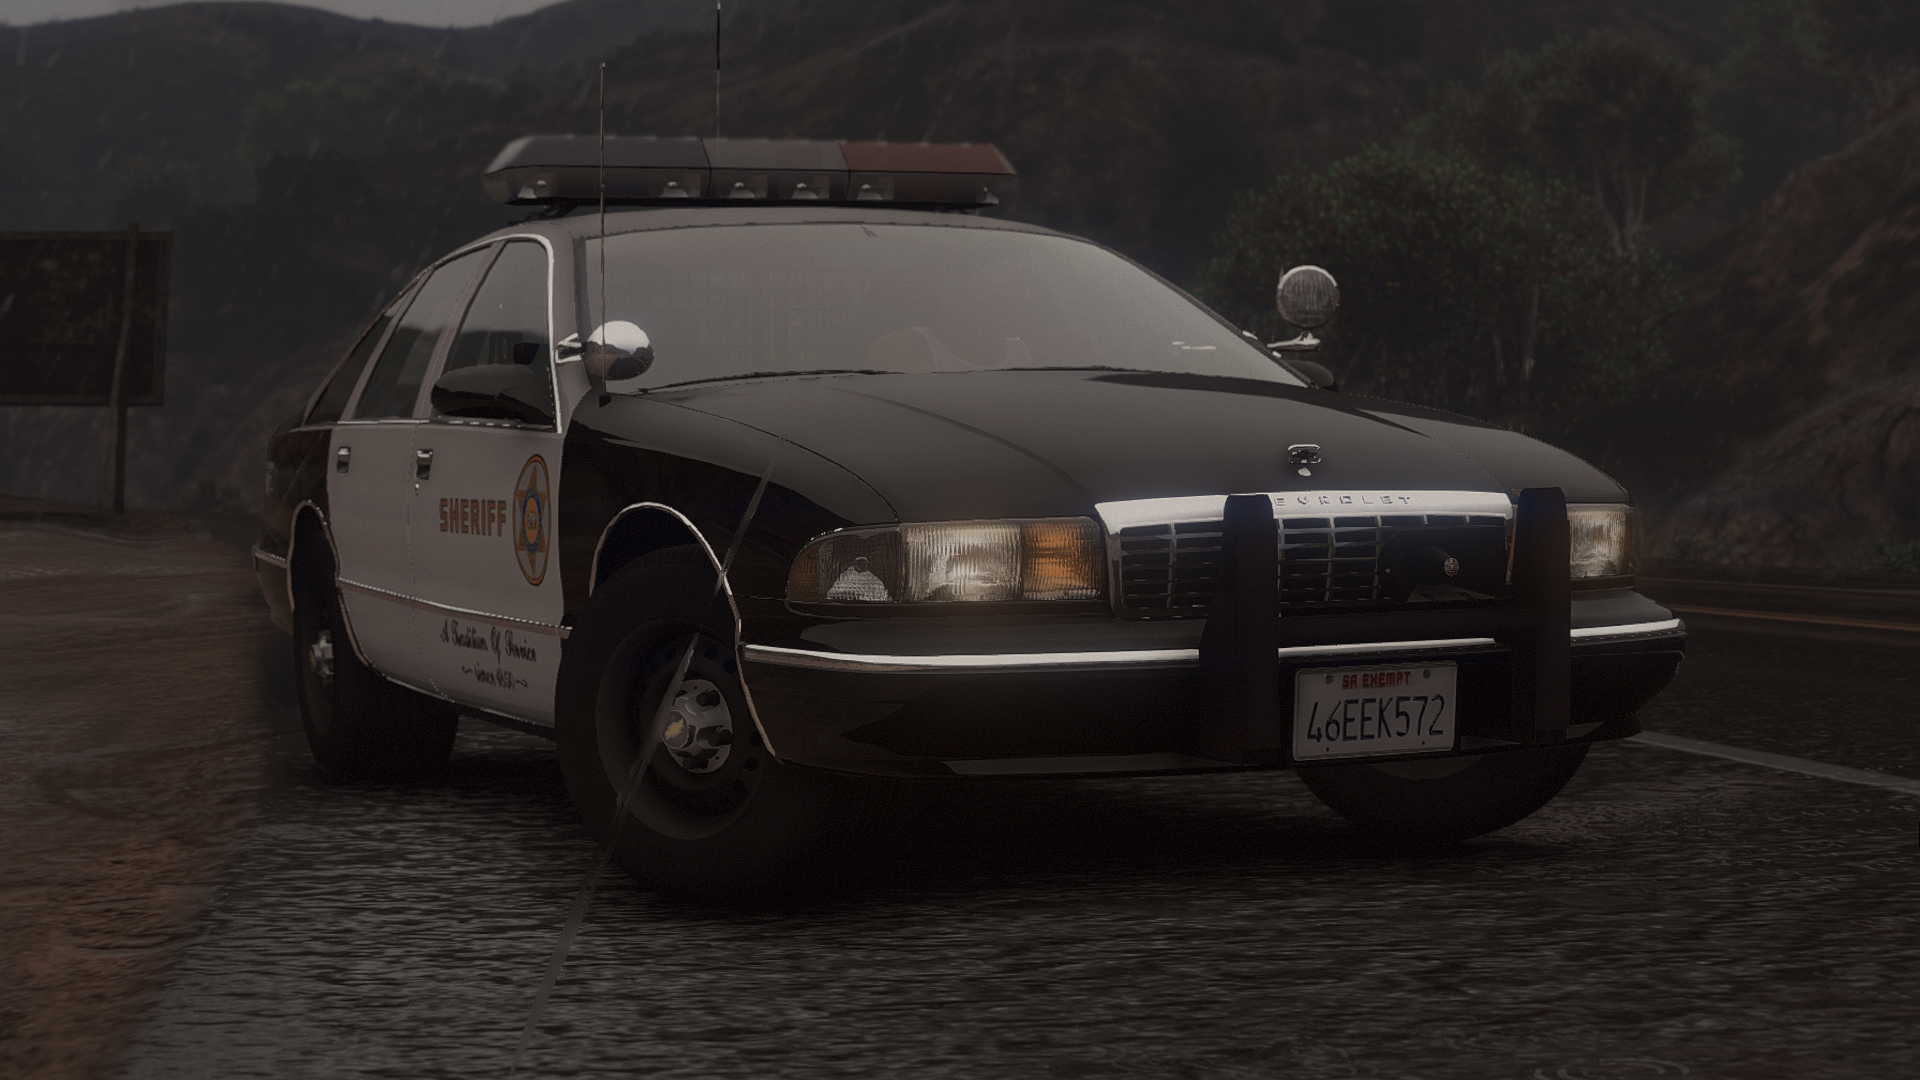 1995 Chevy Caprice 9C1- Los Angeles County Sheriff's Department